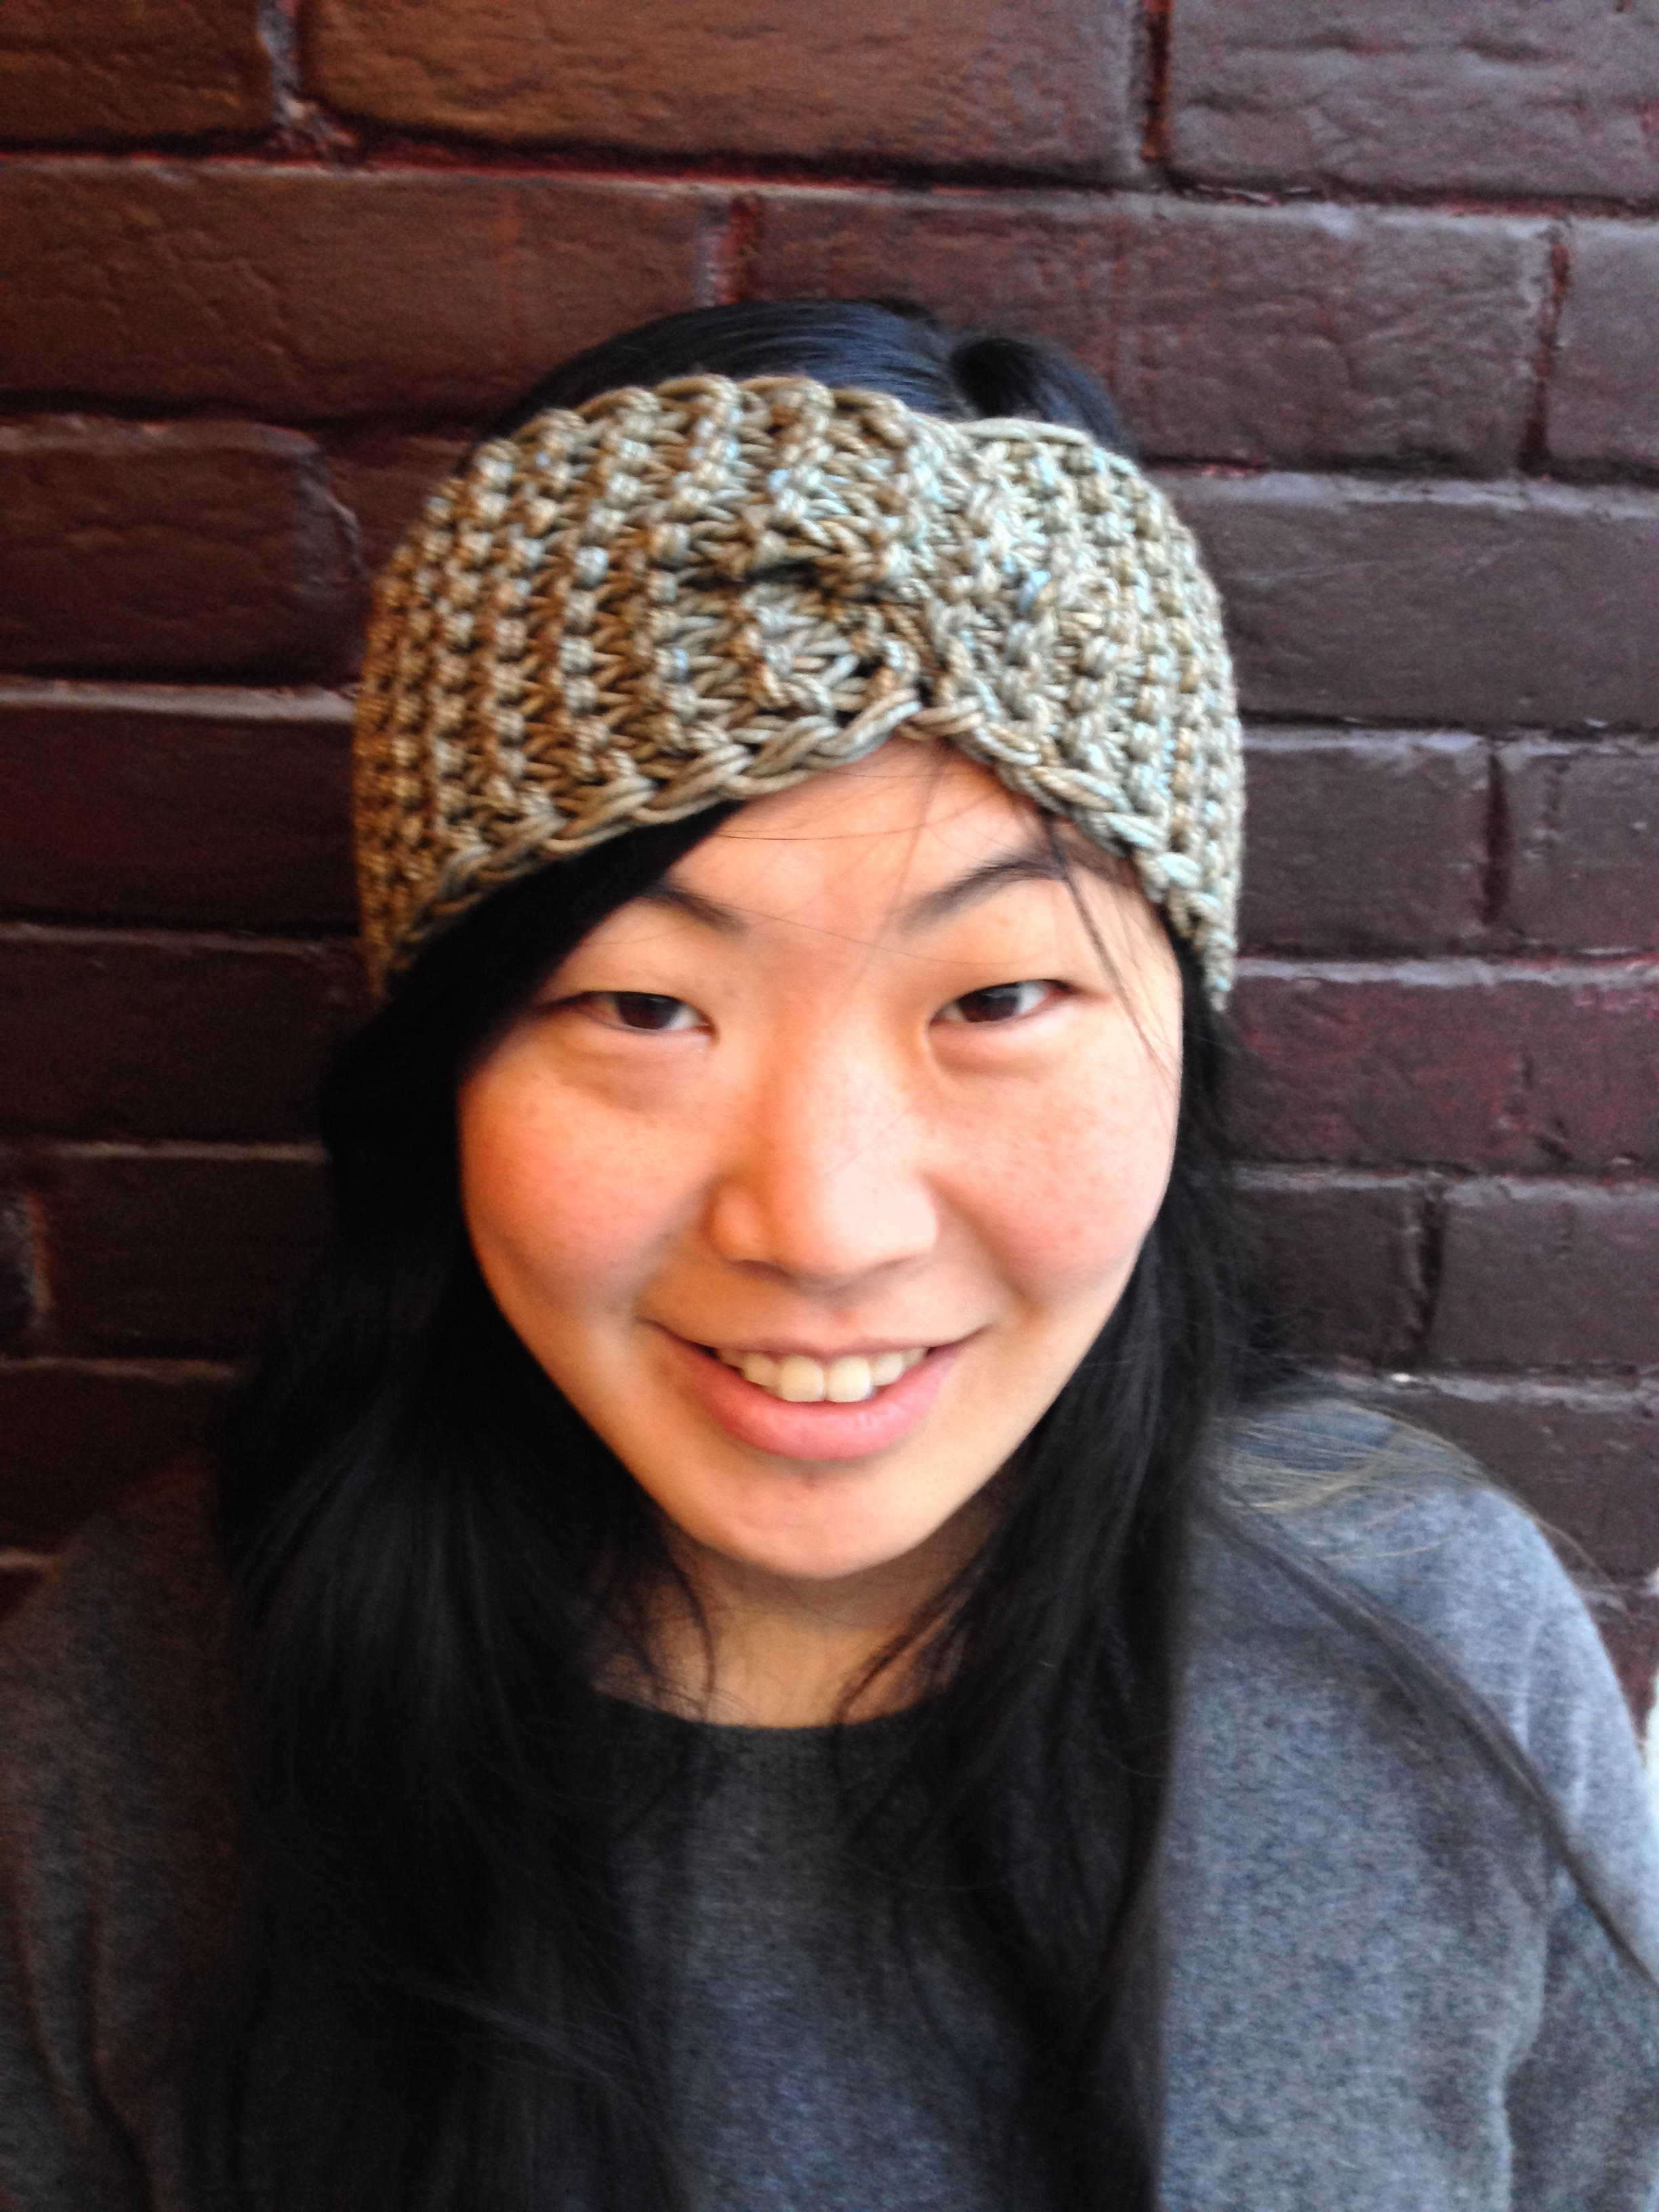 Headband Knitting Pattern : I m with the band! A knitted headband story. the knit cafe